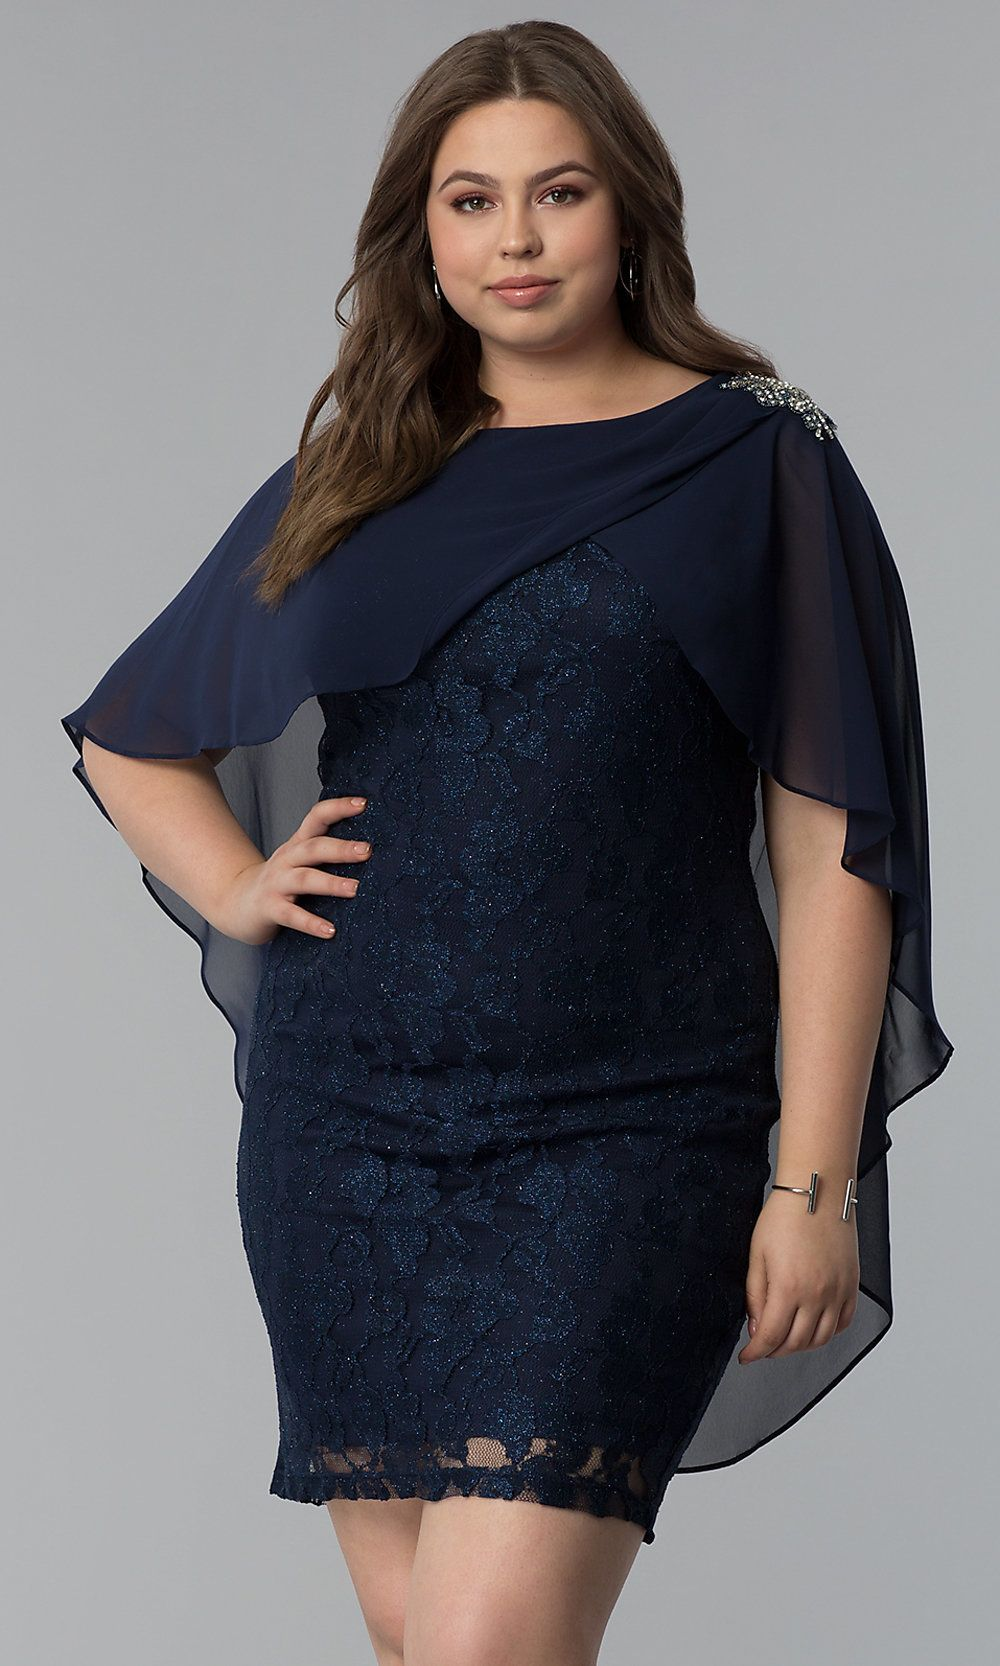 23+ Second dress for wedding reception plus size ideas in 2021